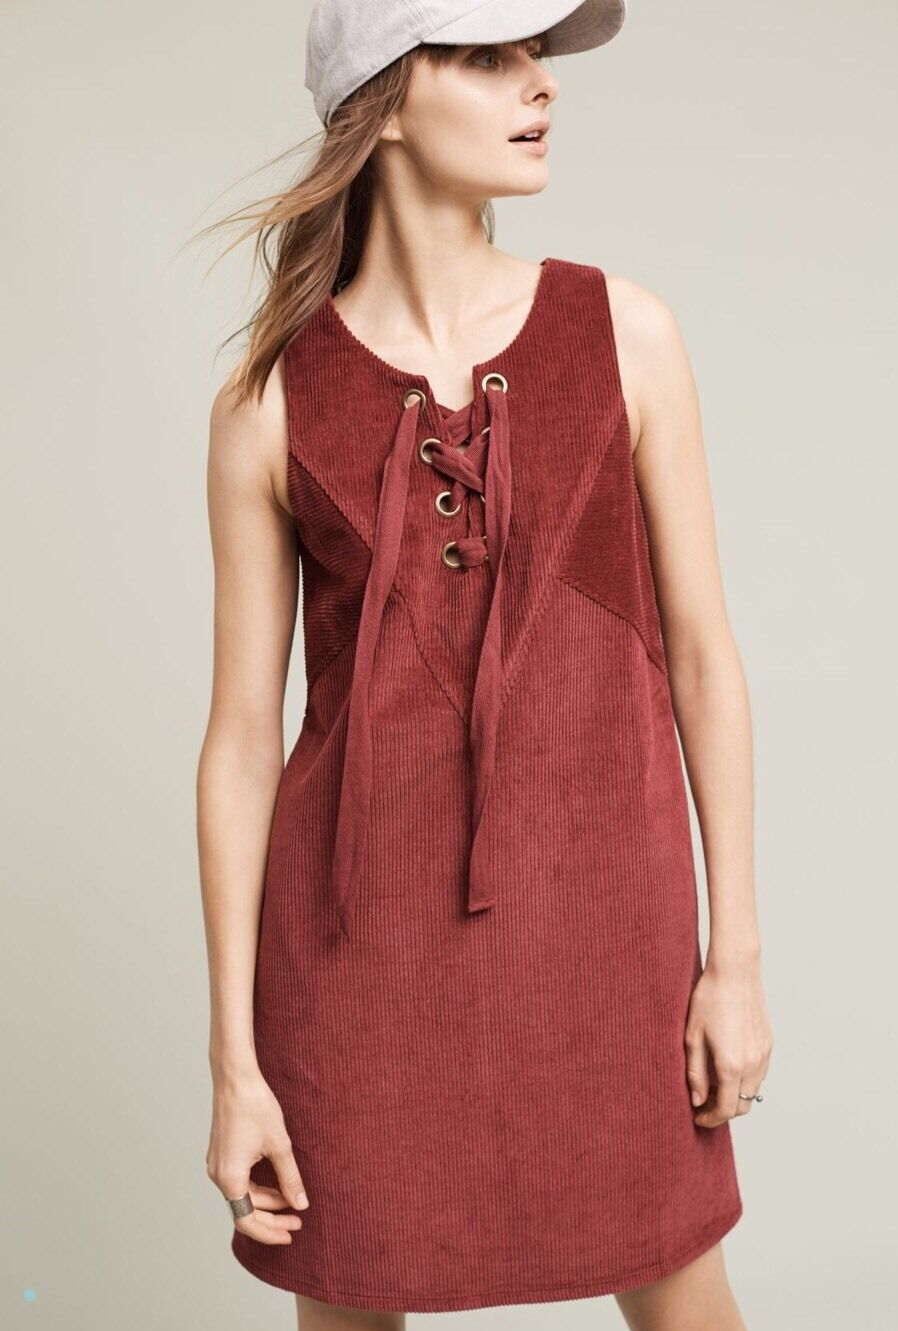 NWT NEW Maeve Anthropologie Liesl Corded Swing Dress Wine Red Lace Up Sz Small S